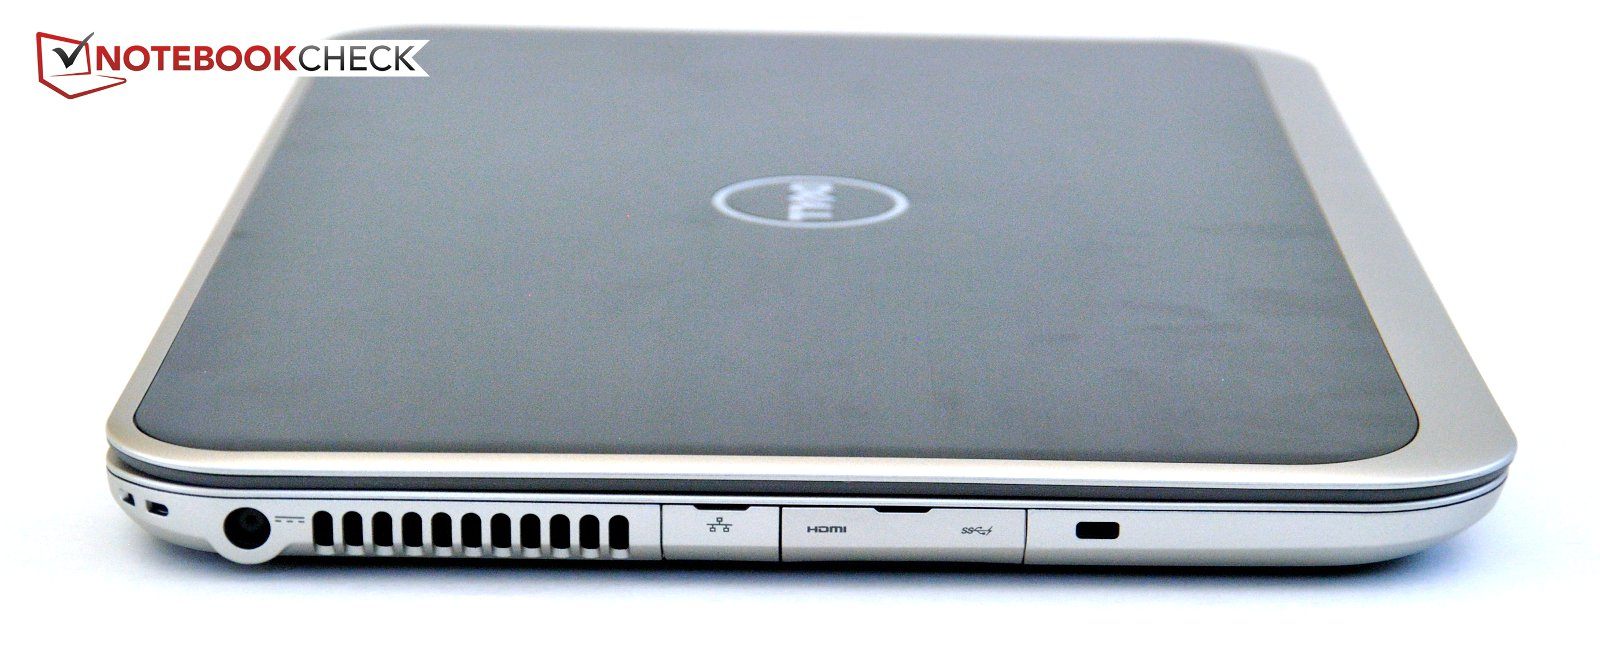 Dell Inspiron 14Z 5423 Notebook Drivers for Windows 10